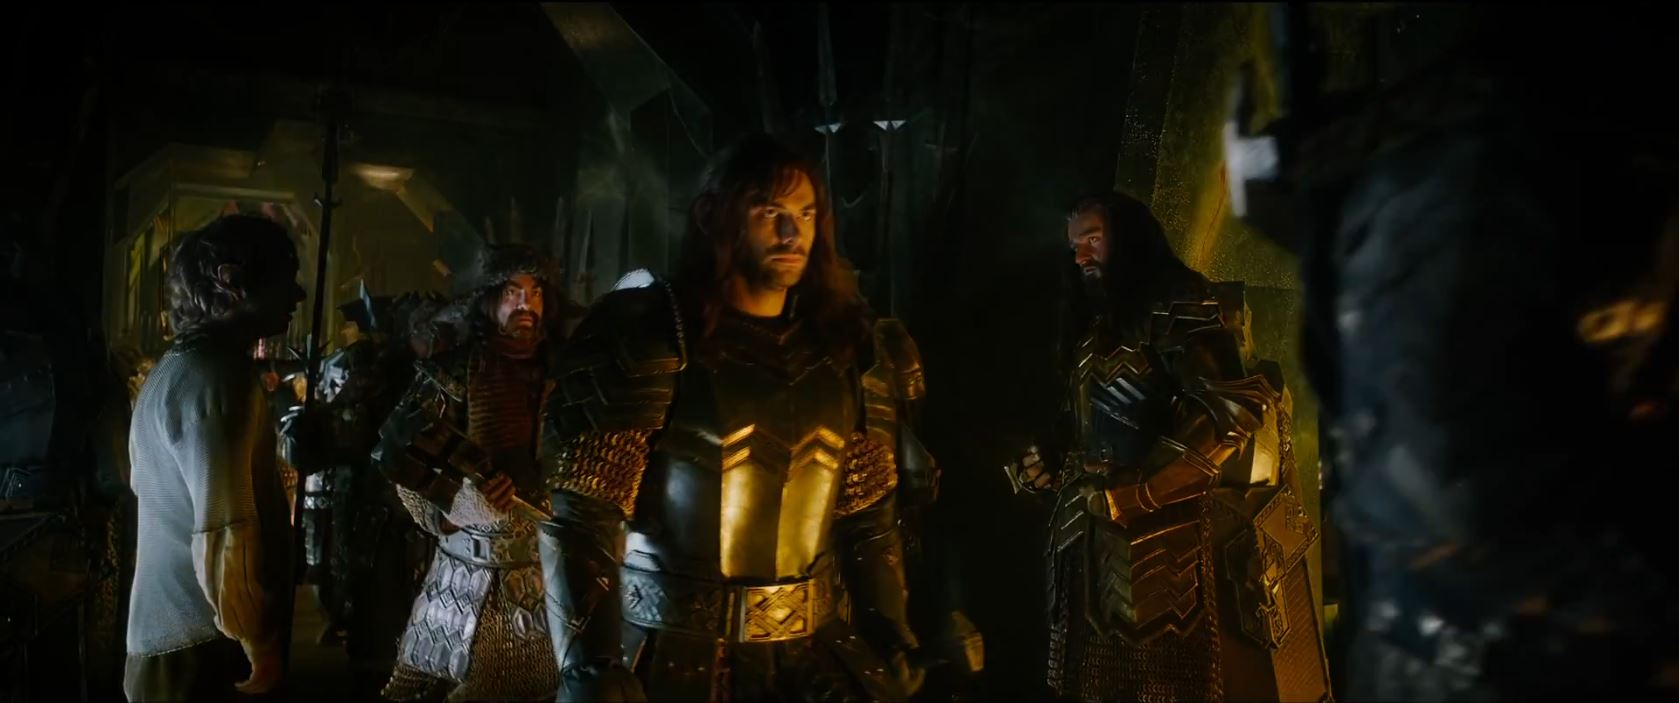 The Hobbit The Battle of the Five Armies Trailer - Dwarf army and bilbo